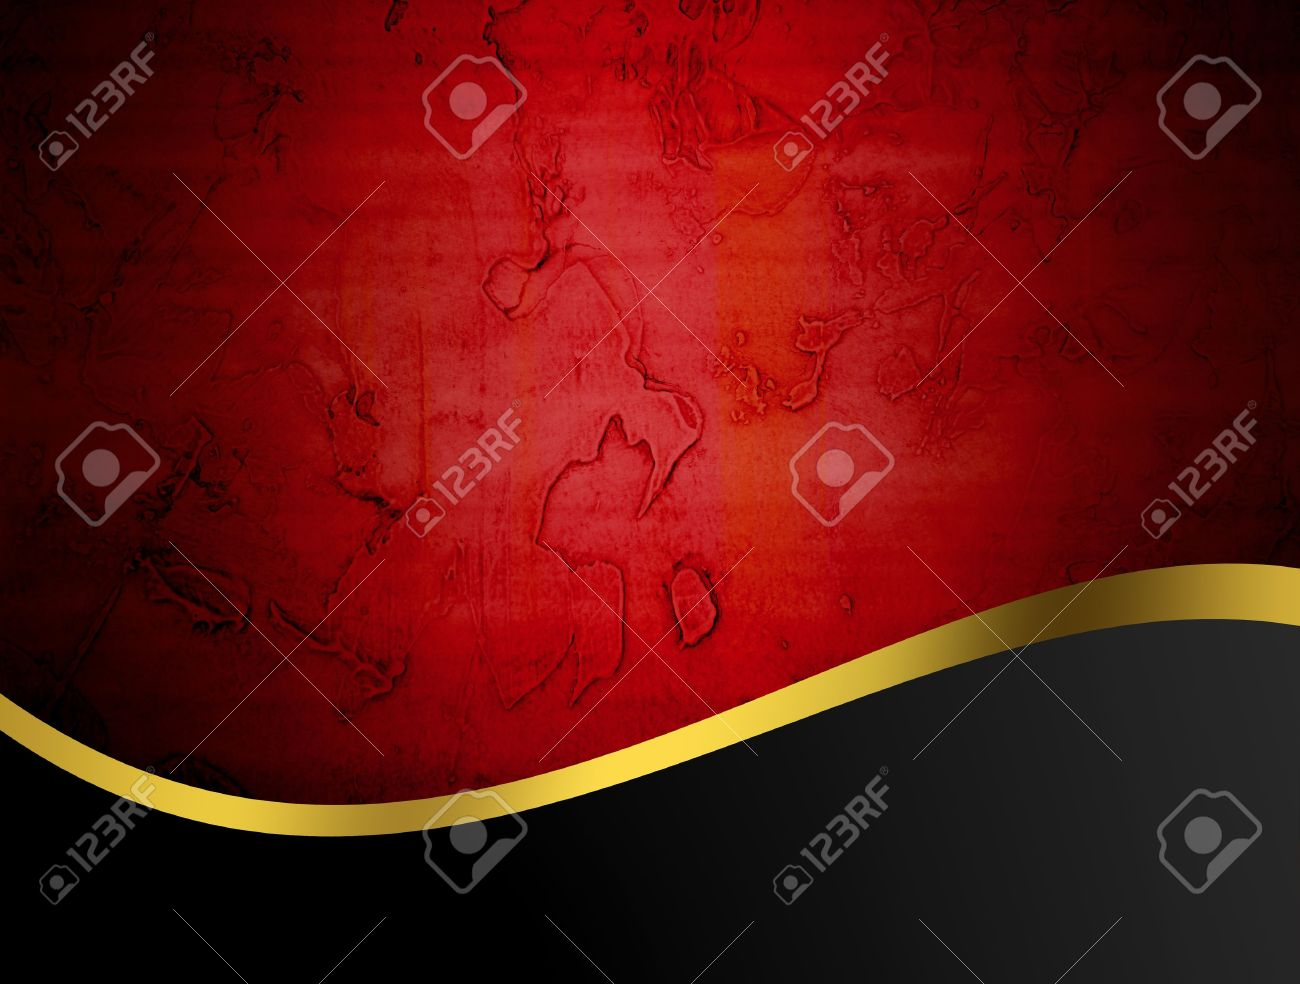 Red, Gold And Black Abstract